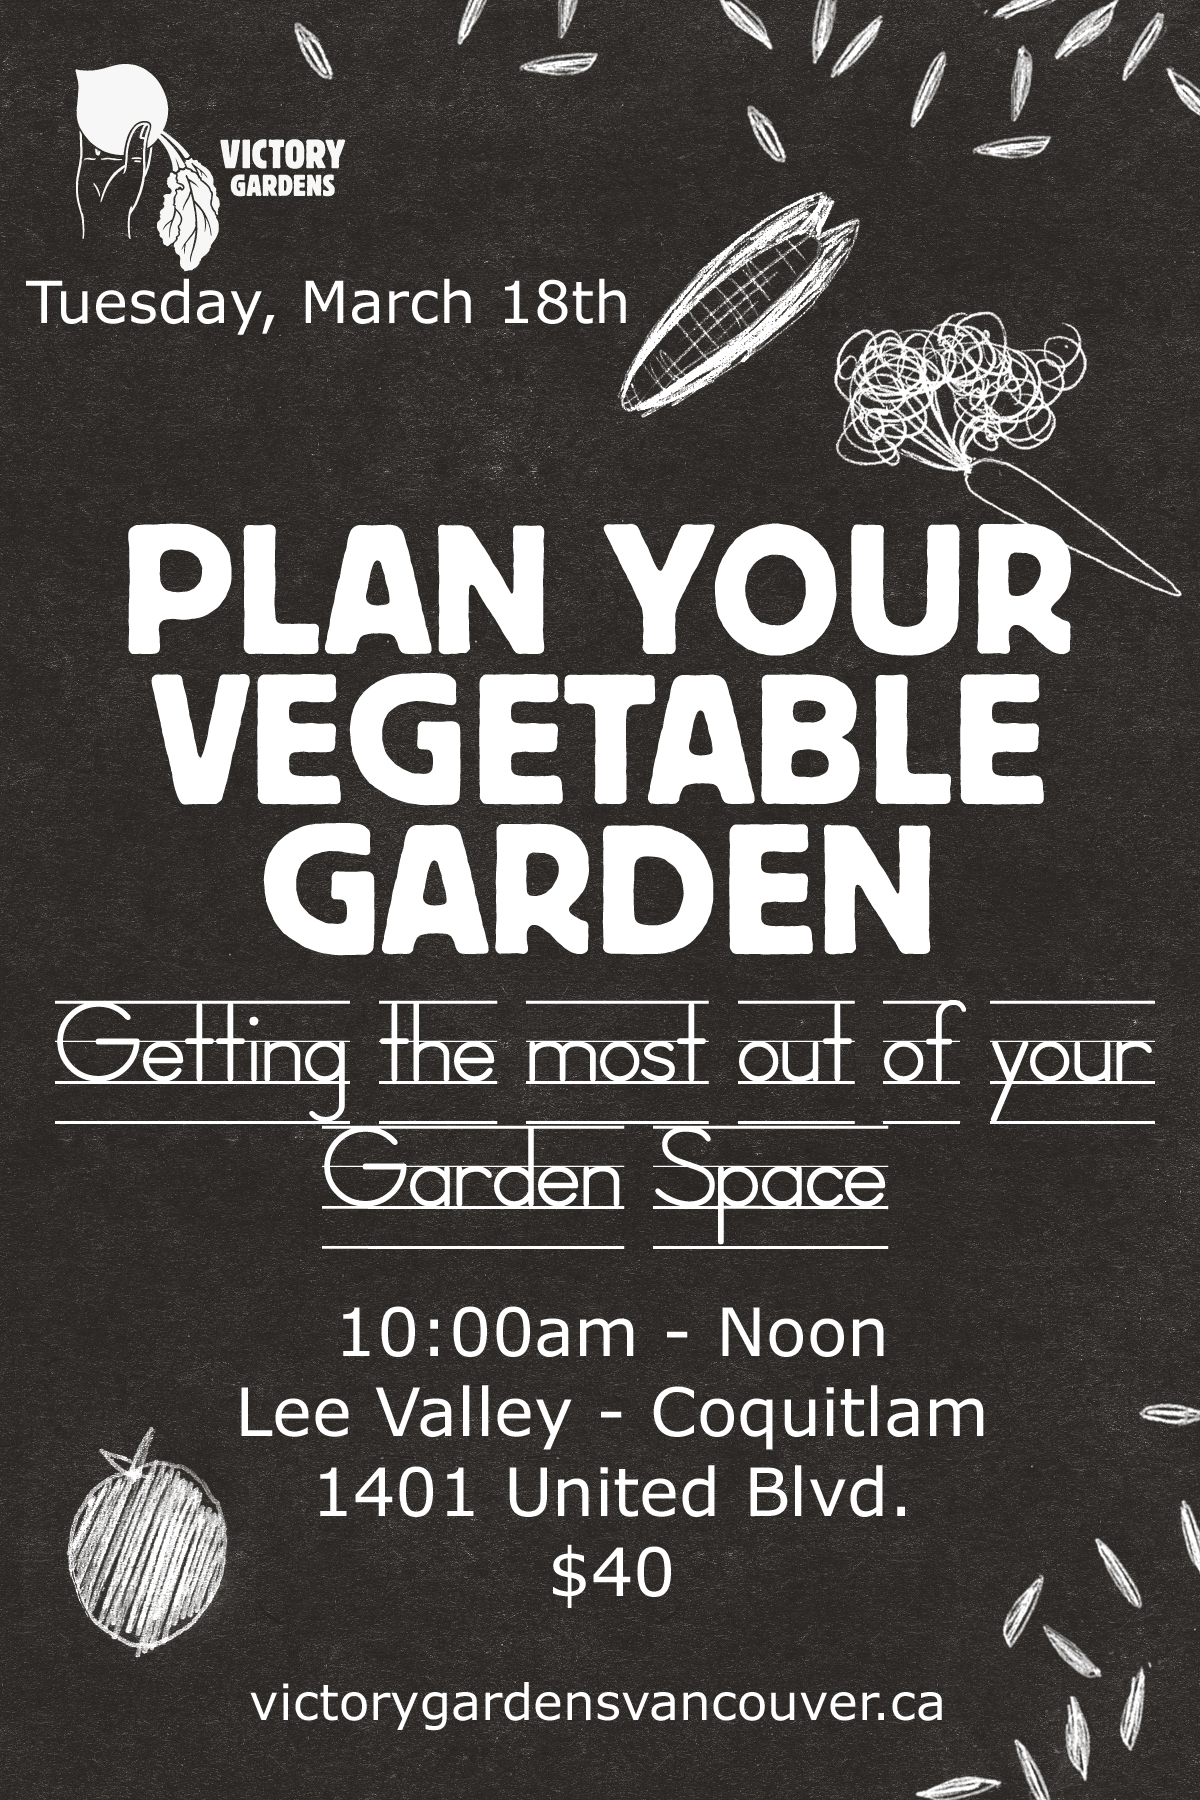 Plan Your Vegetable Garden Getting the Most Out of Your